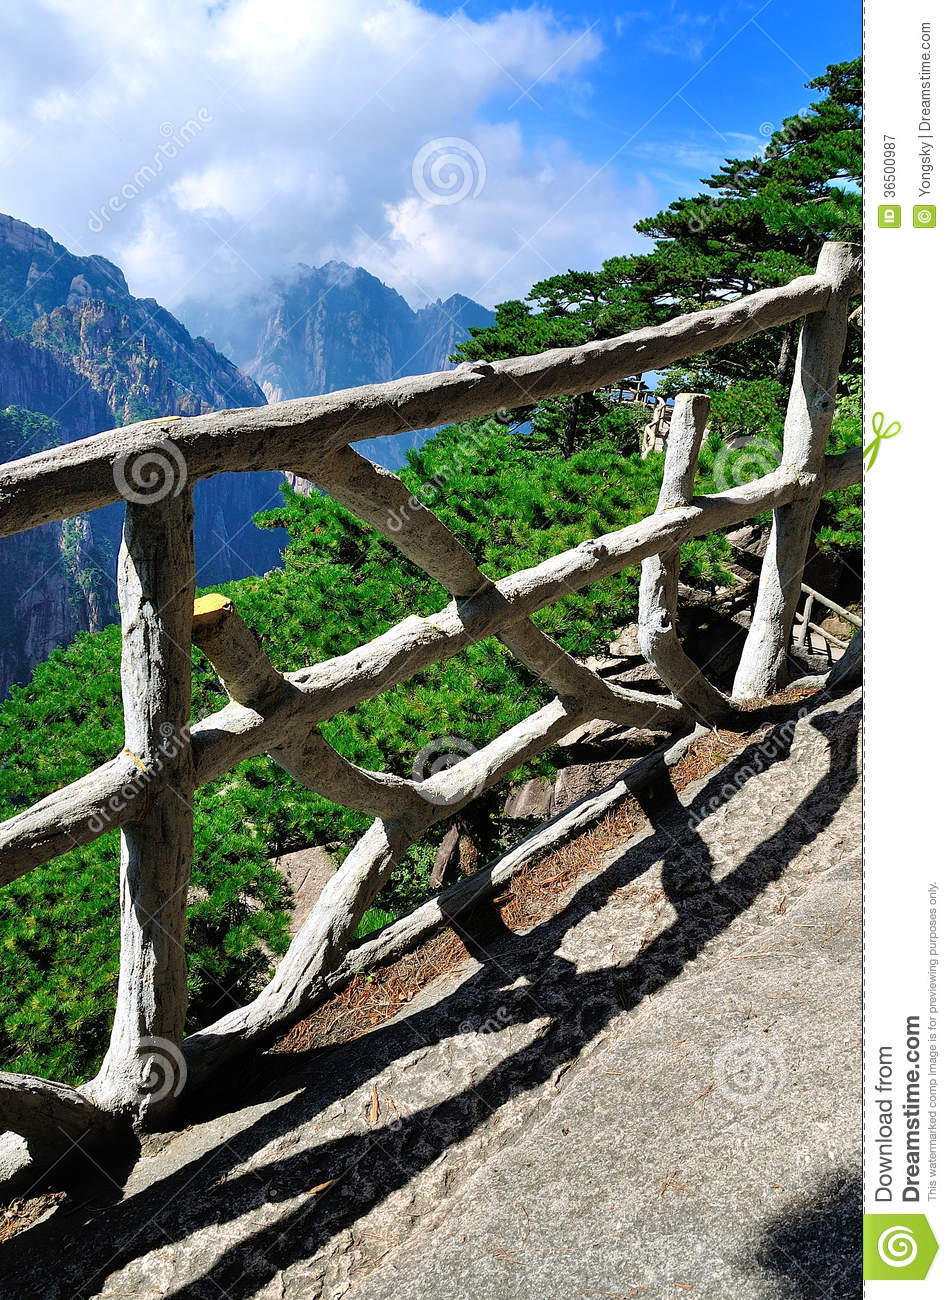 Huangshan, porcelaine incroyable